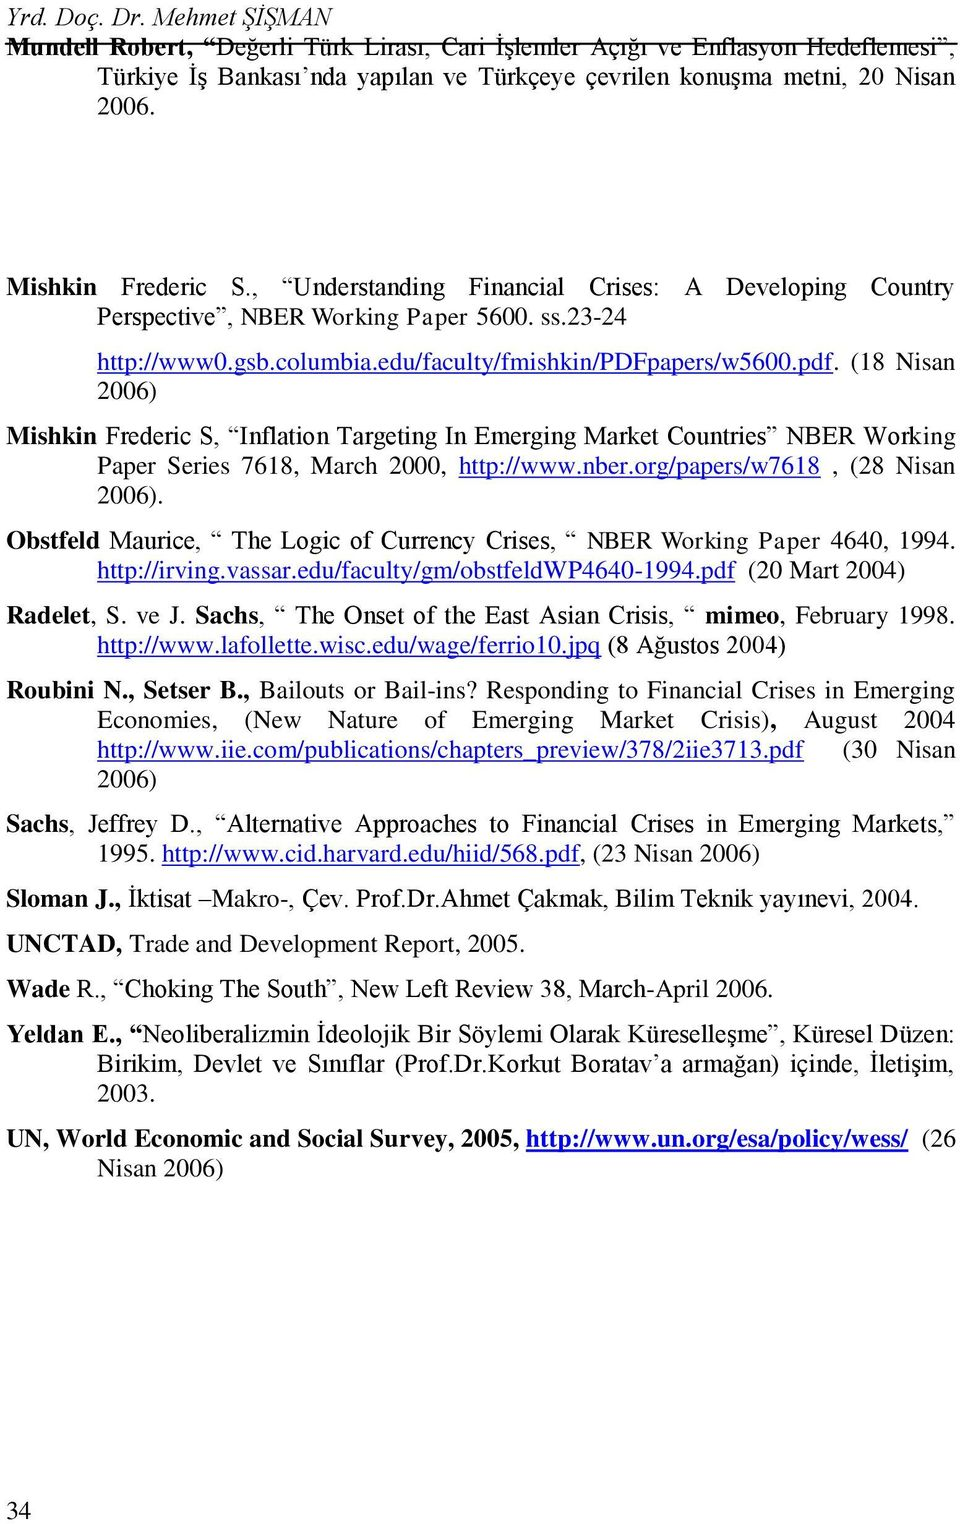 apers/w5600.pdf. (18 Nisan 2006) Mishkin Frederic S, Inflation Targeting In Emerging Market Countries NBER Working Paper Series 7618, March 2000, http://www.nber.org/papers/w7618, (28 Nisan 2006).